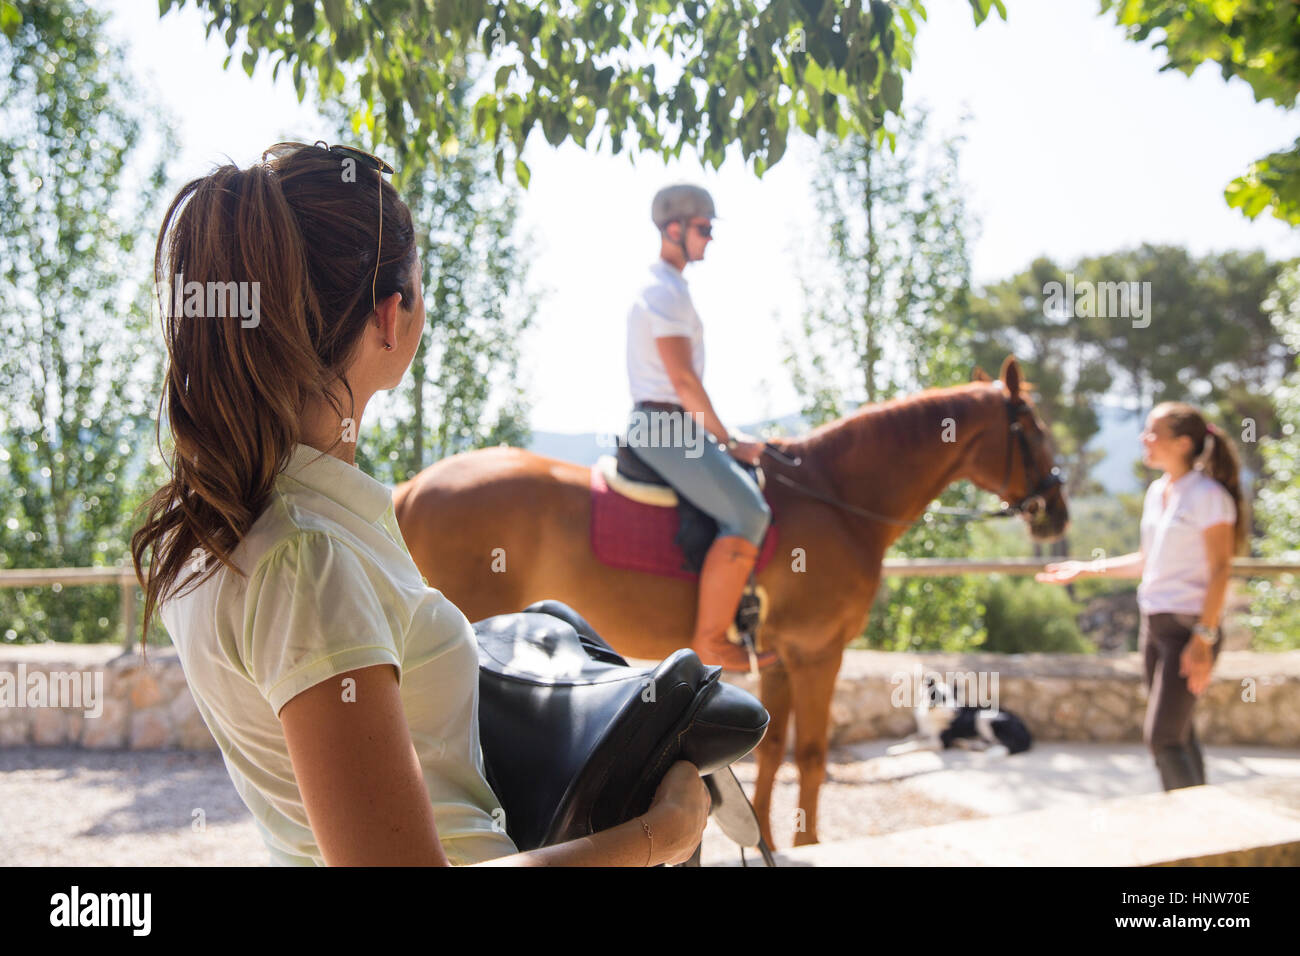 Female groom carrying saddle at rural stables - Stock Image